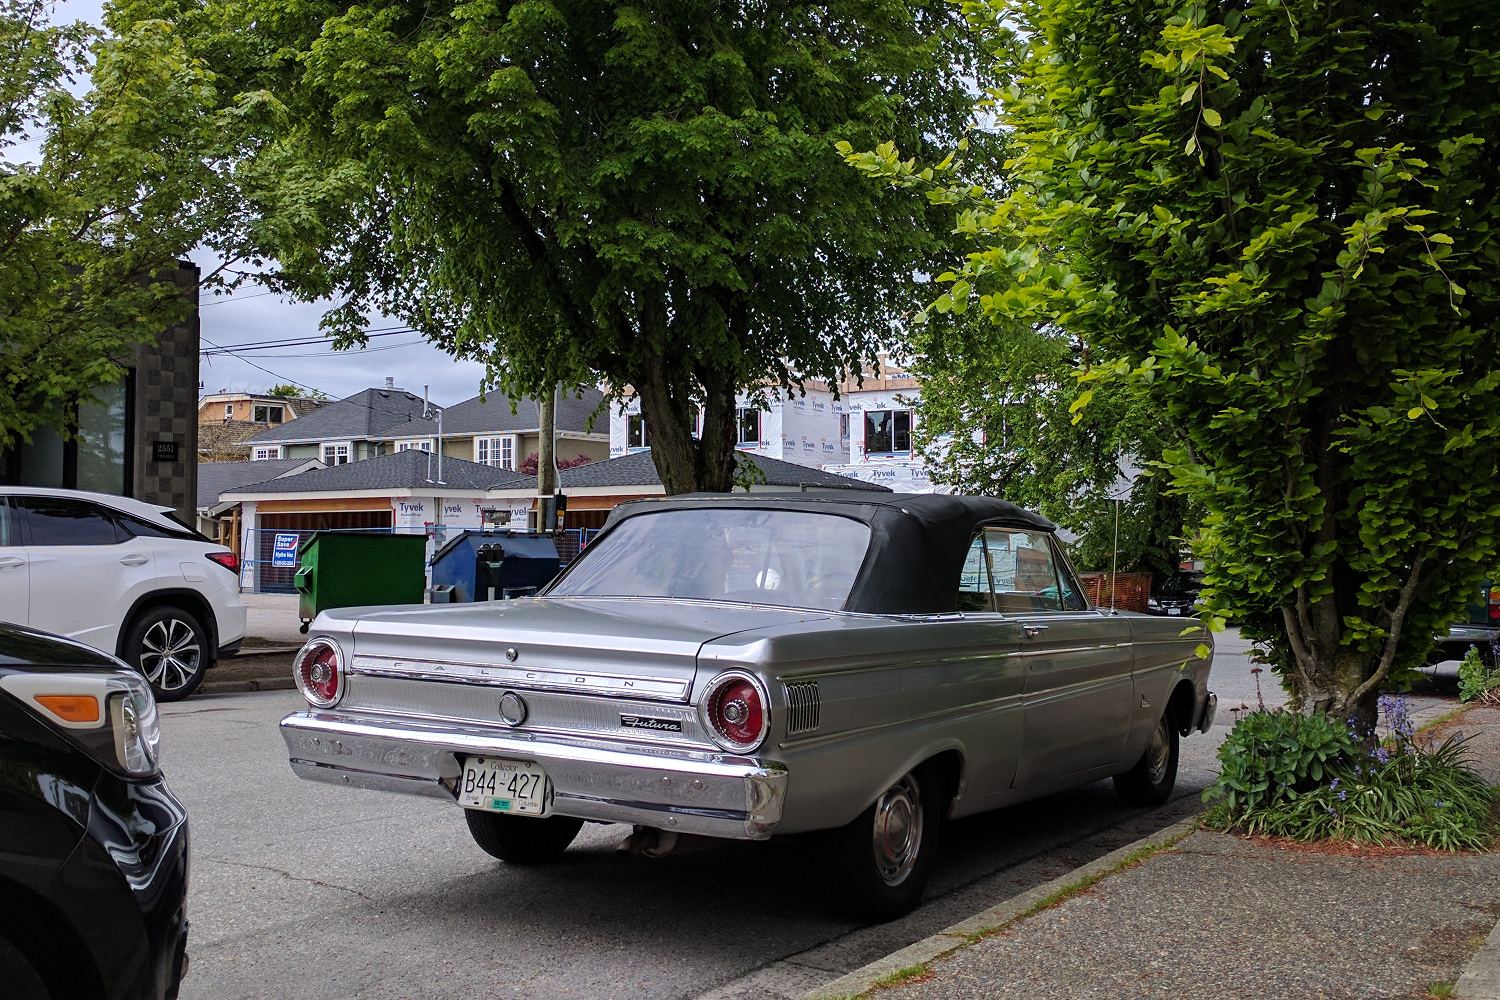 Old Parked Cars Vancouver 1964 Ford Falcon Futura Convertible